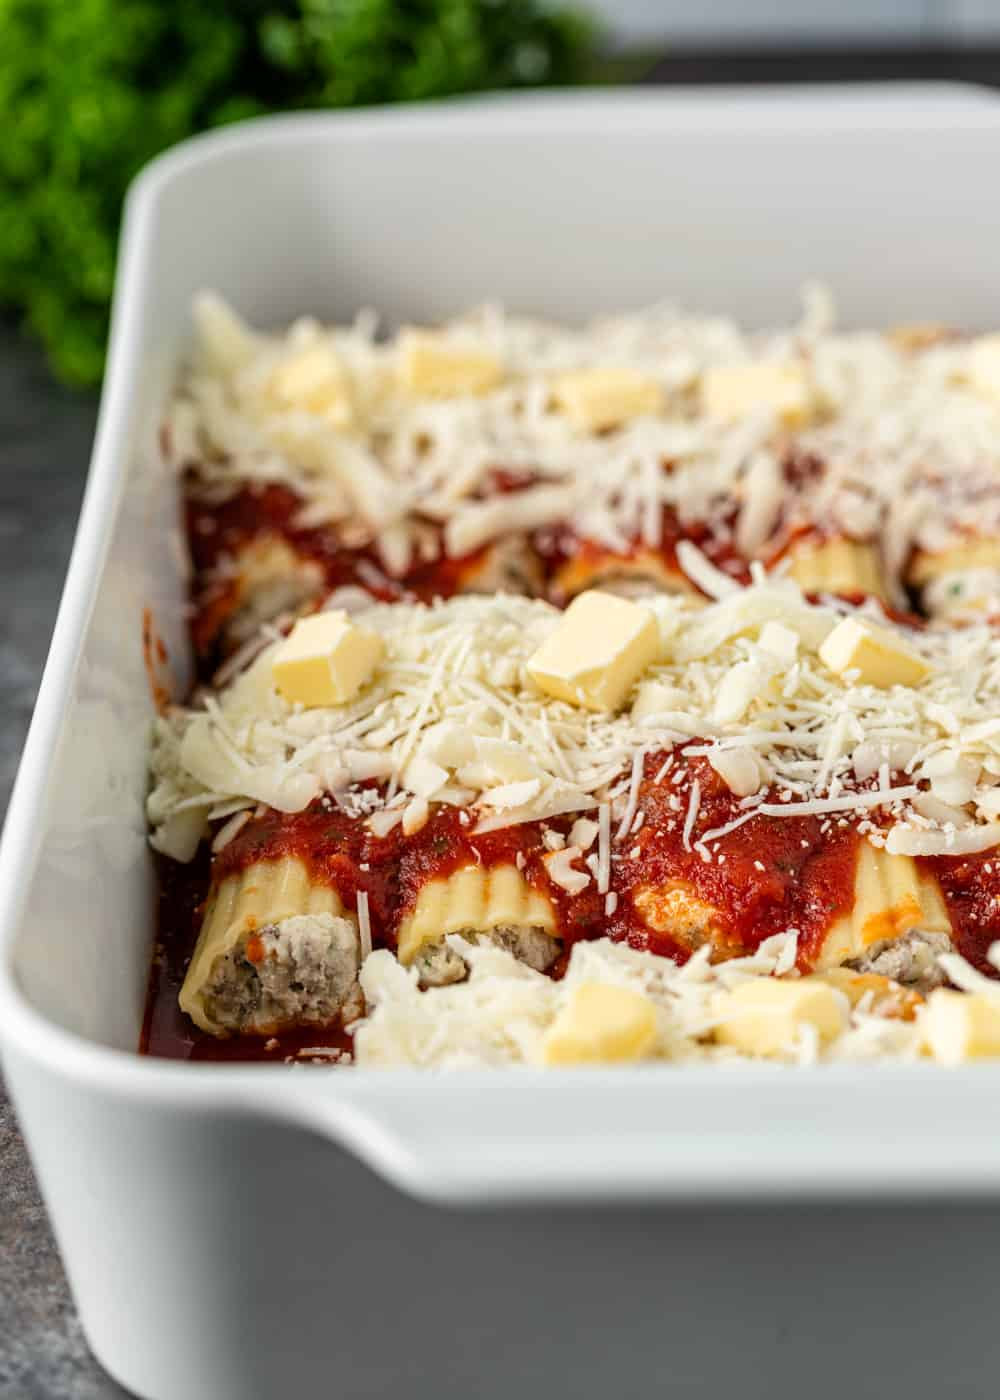 butter and cheese on top of stuffed manicotti in pan